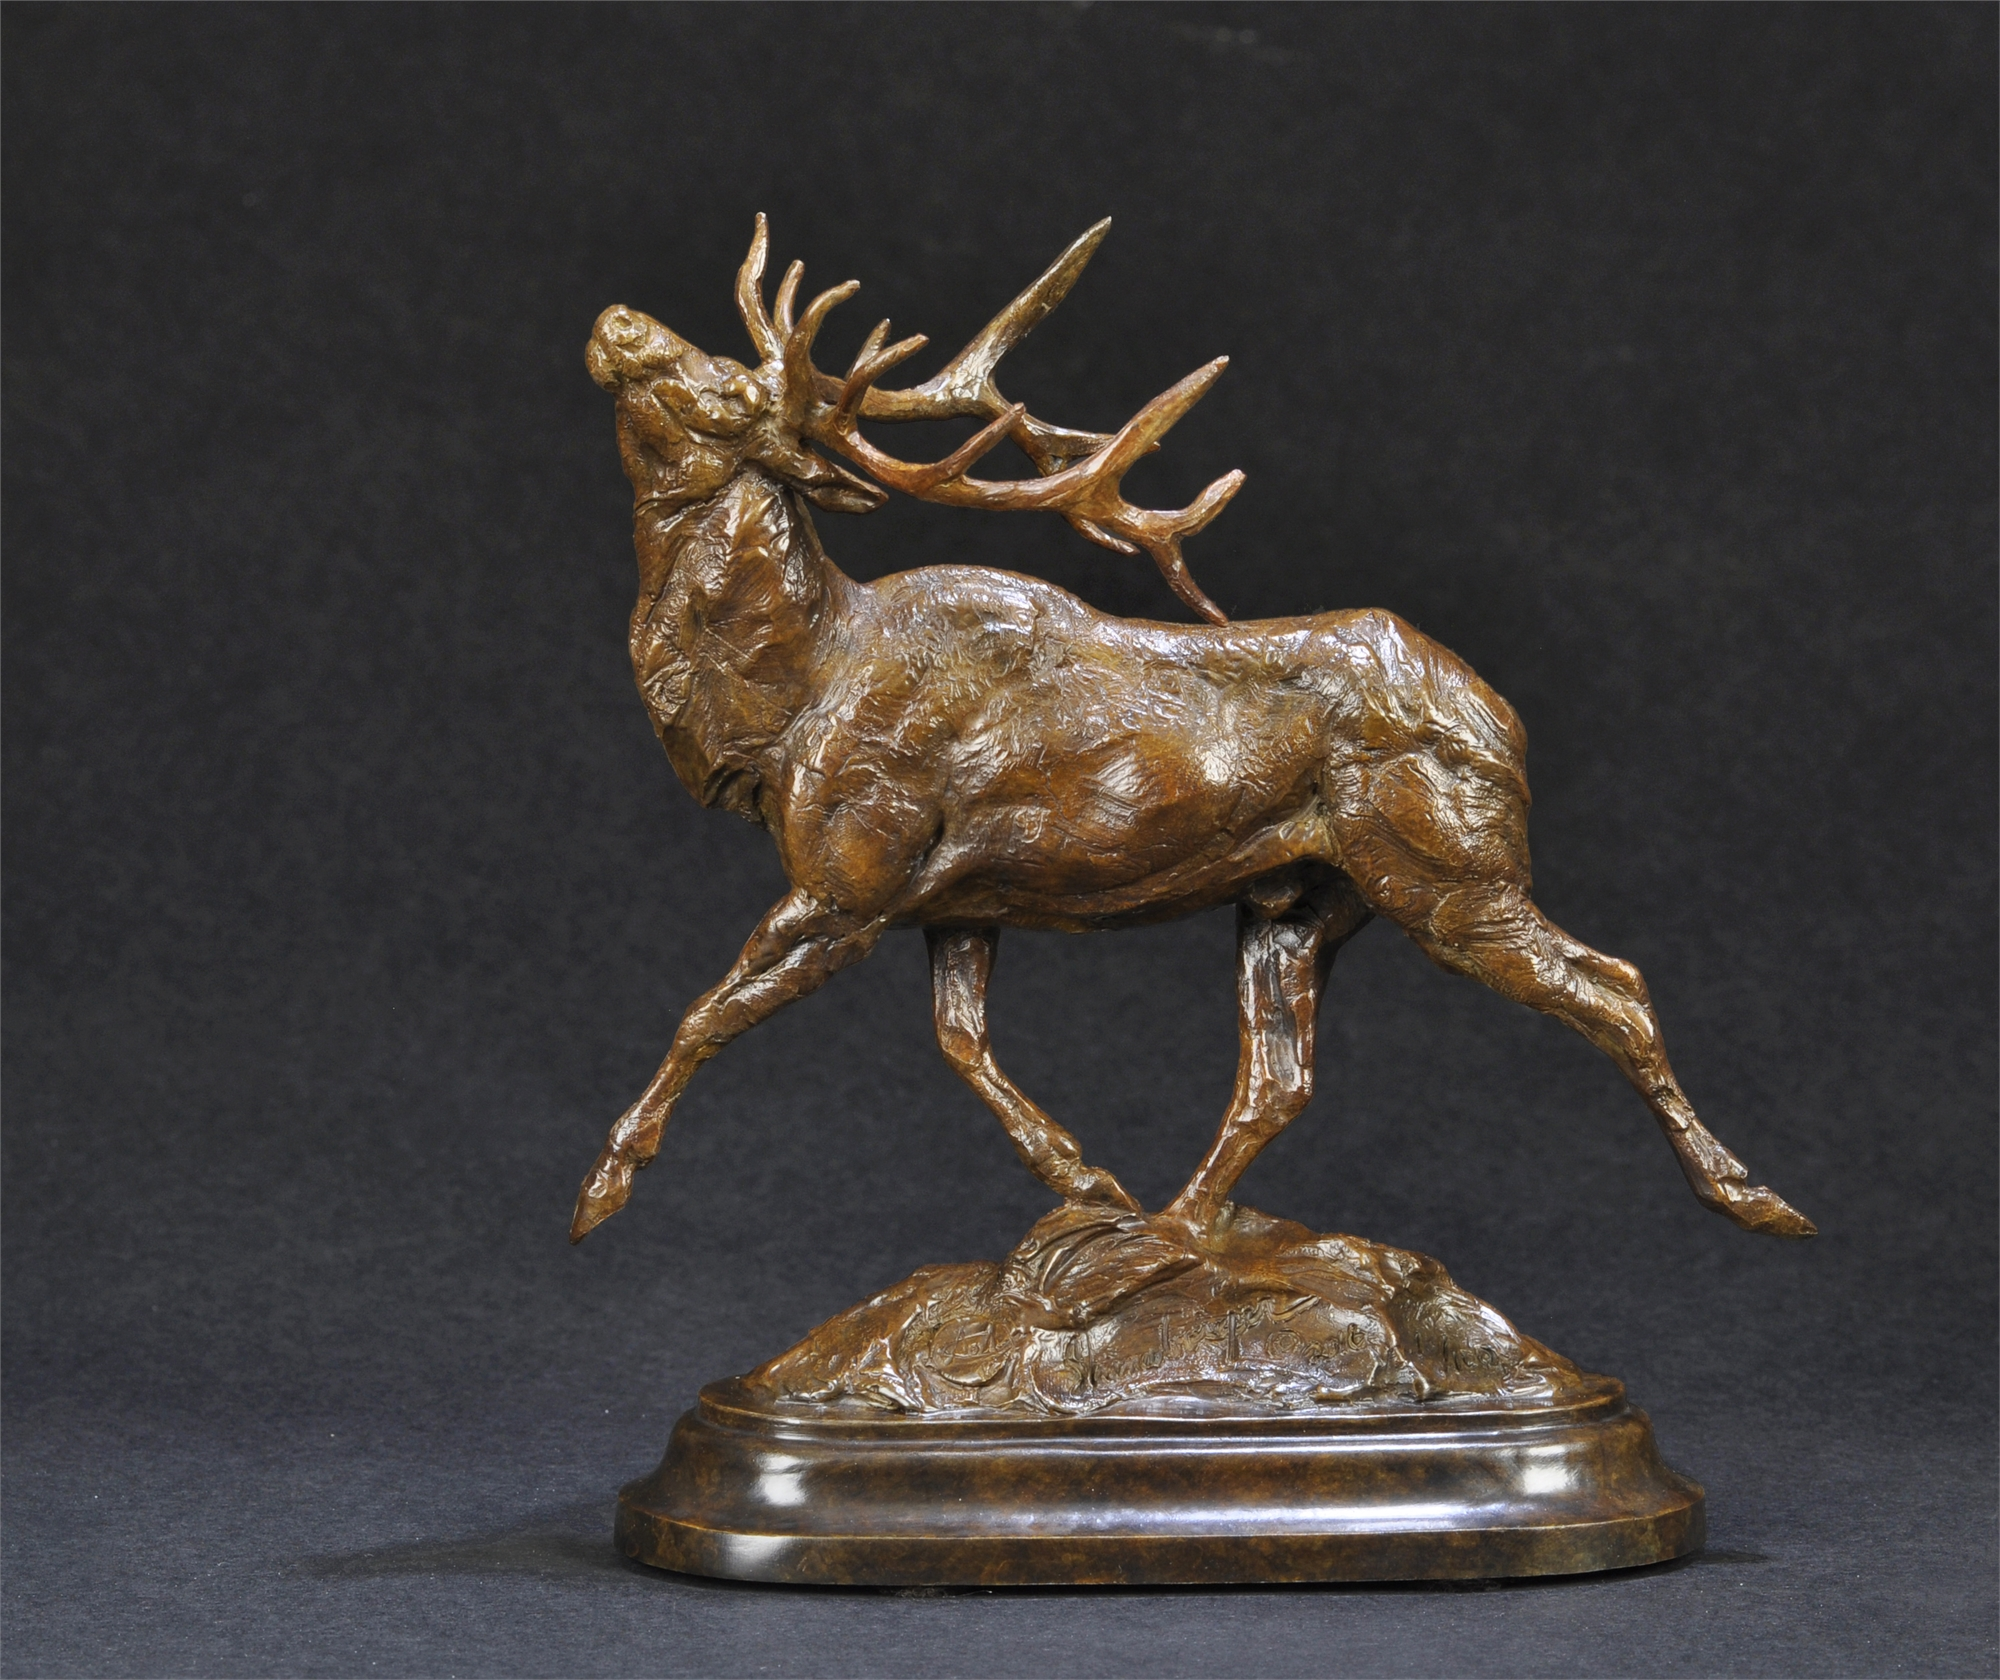 Wapiti (Elk) by Tim Shinabarger